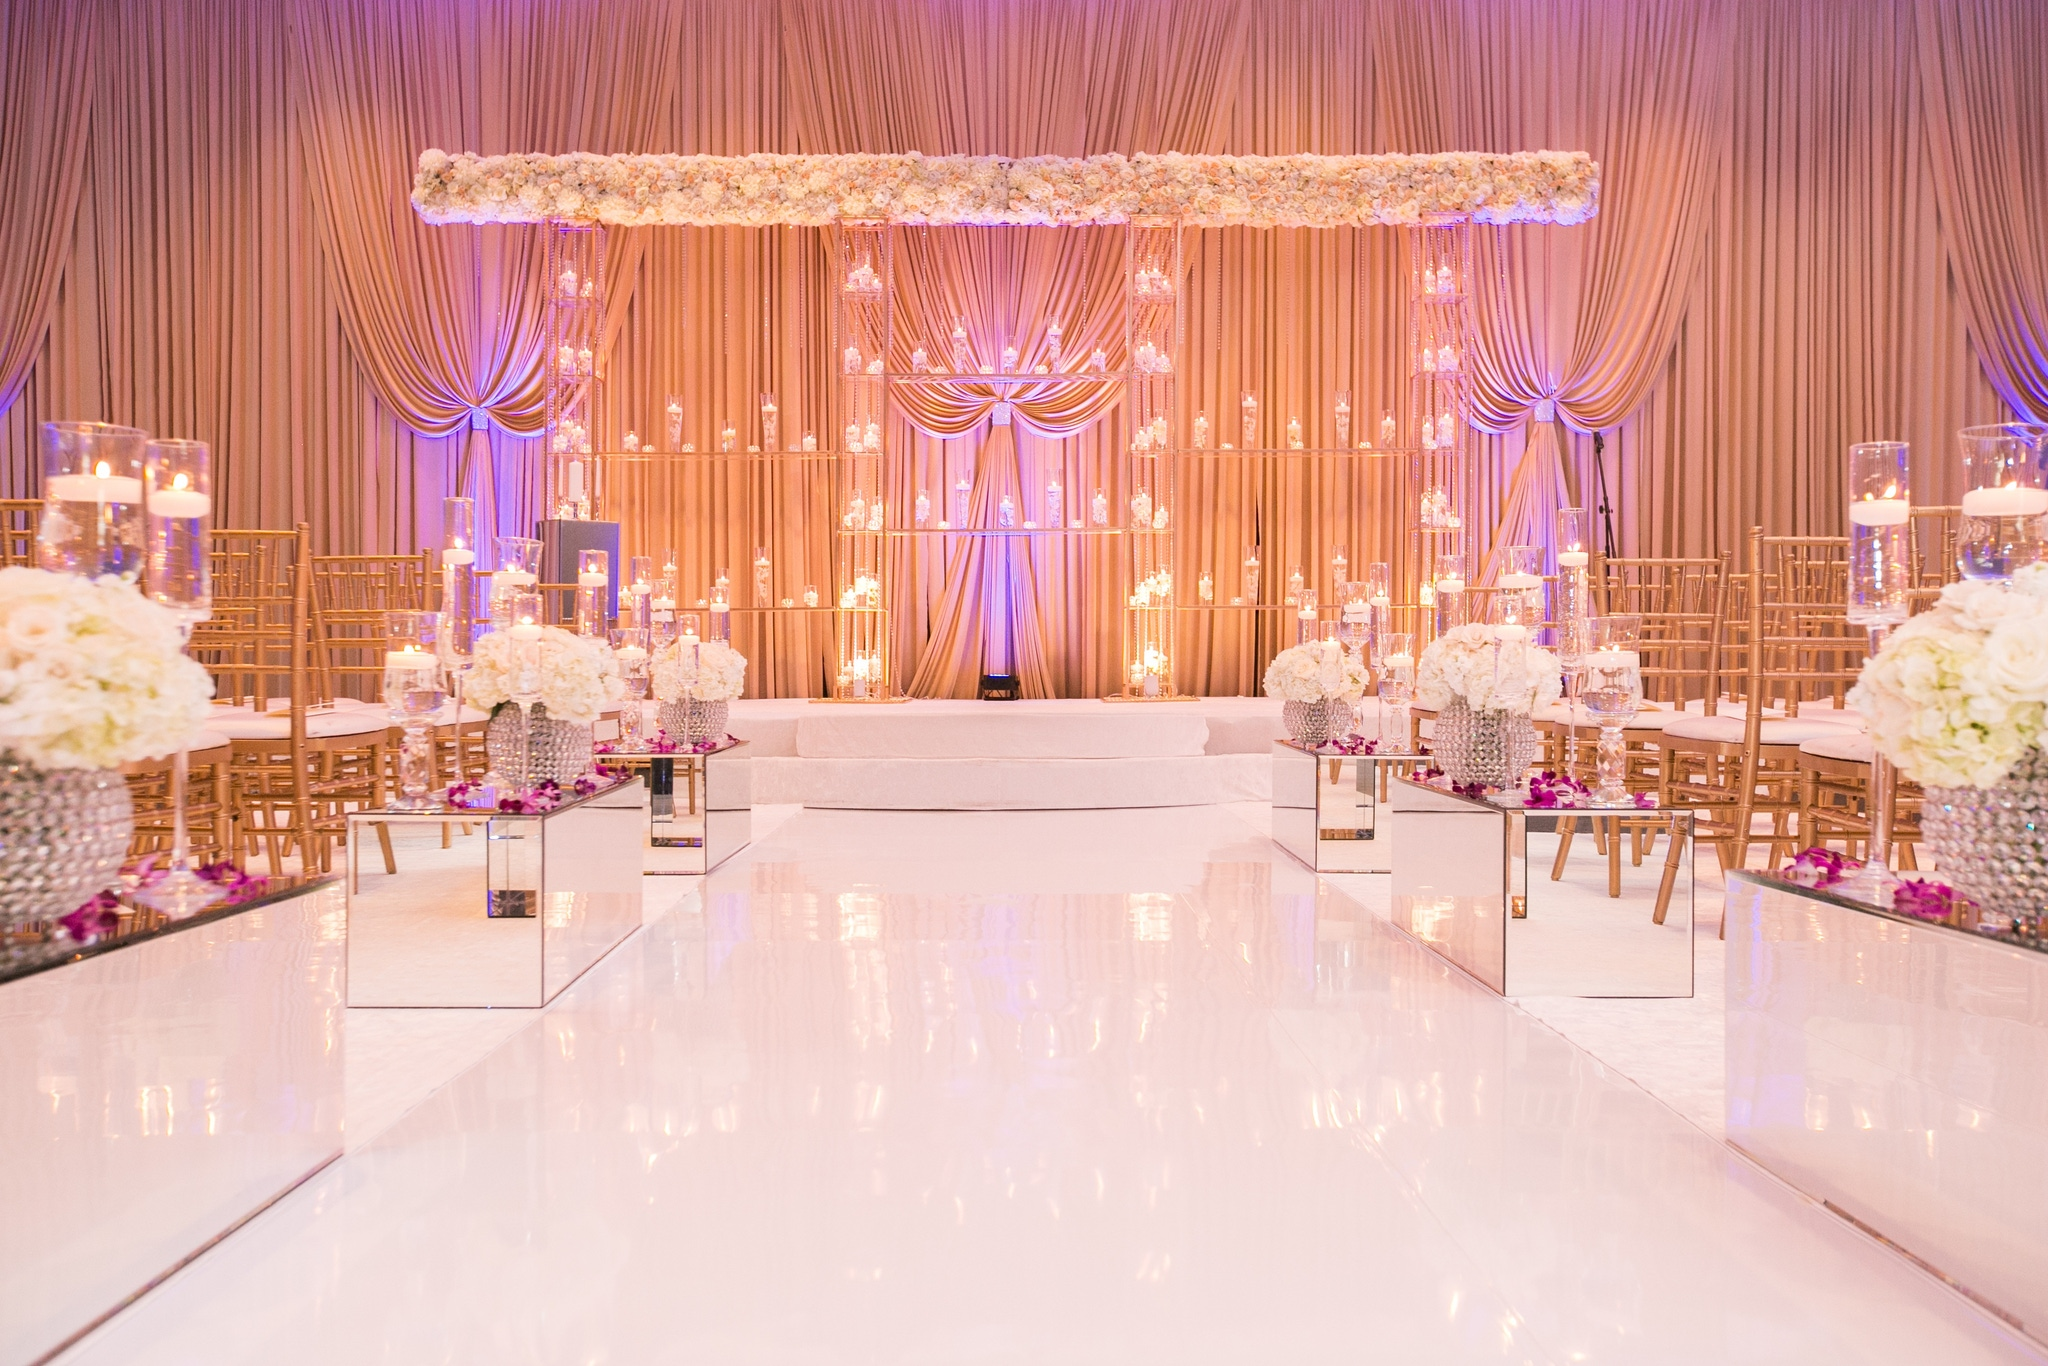 Chicago Wedding and Event Planners - LK-Events